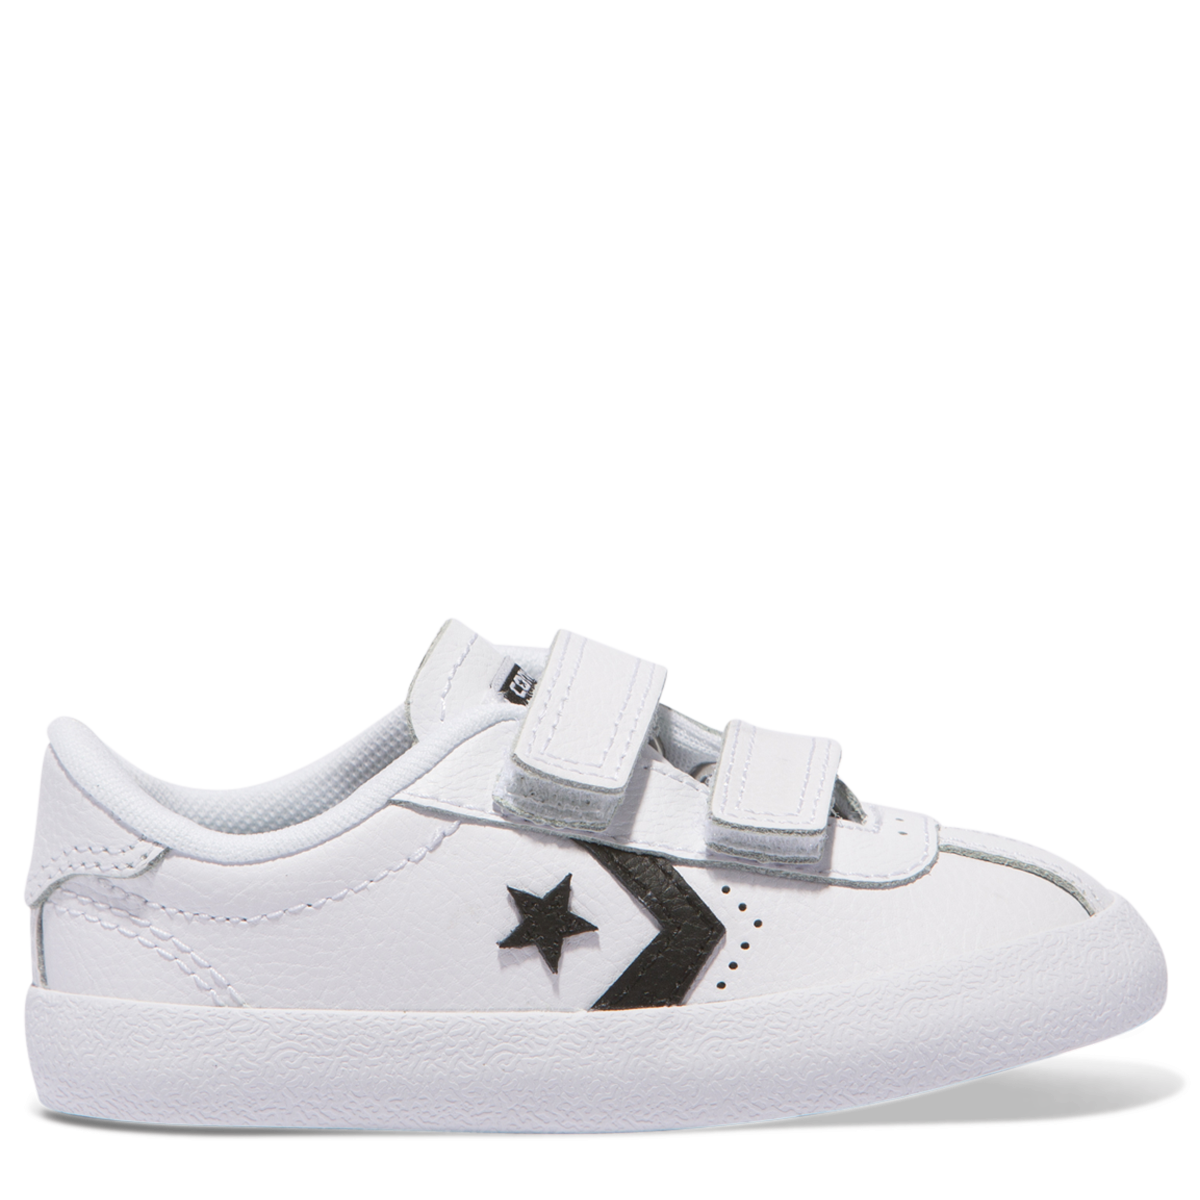 748b28e9afda ireland conversechuck taylor all star high street high top sneaker baby  toddler 0b23d db069  low cost converse breakpoint 2v leather toddler low  top white ...